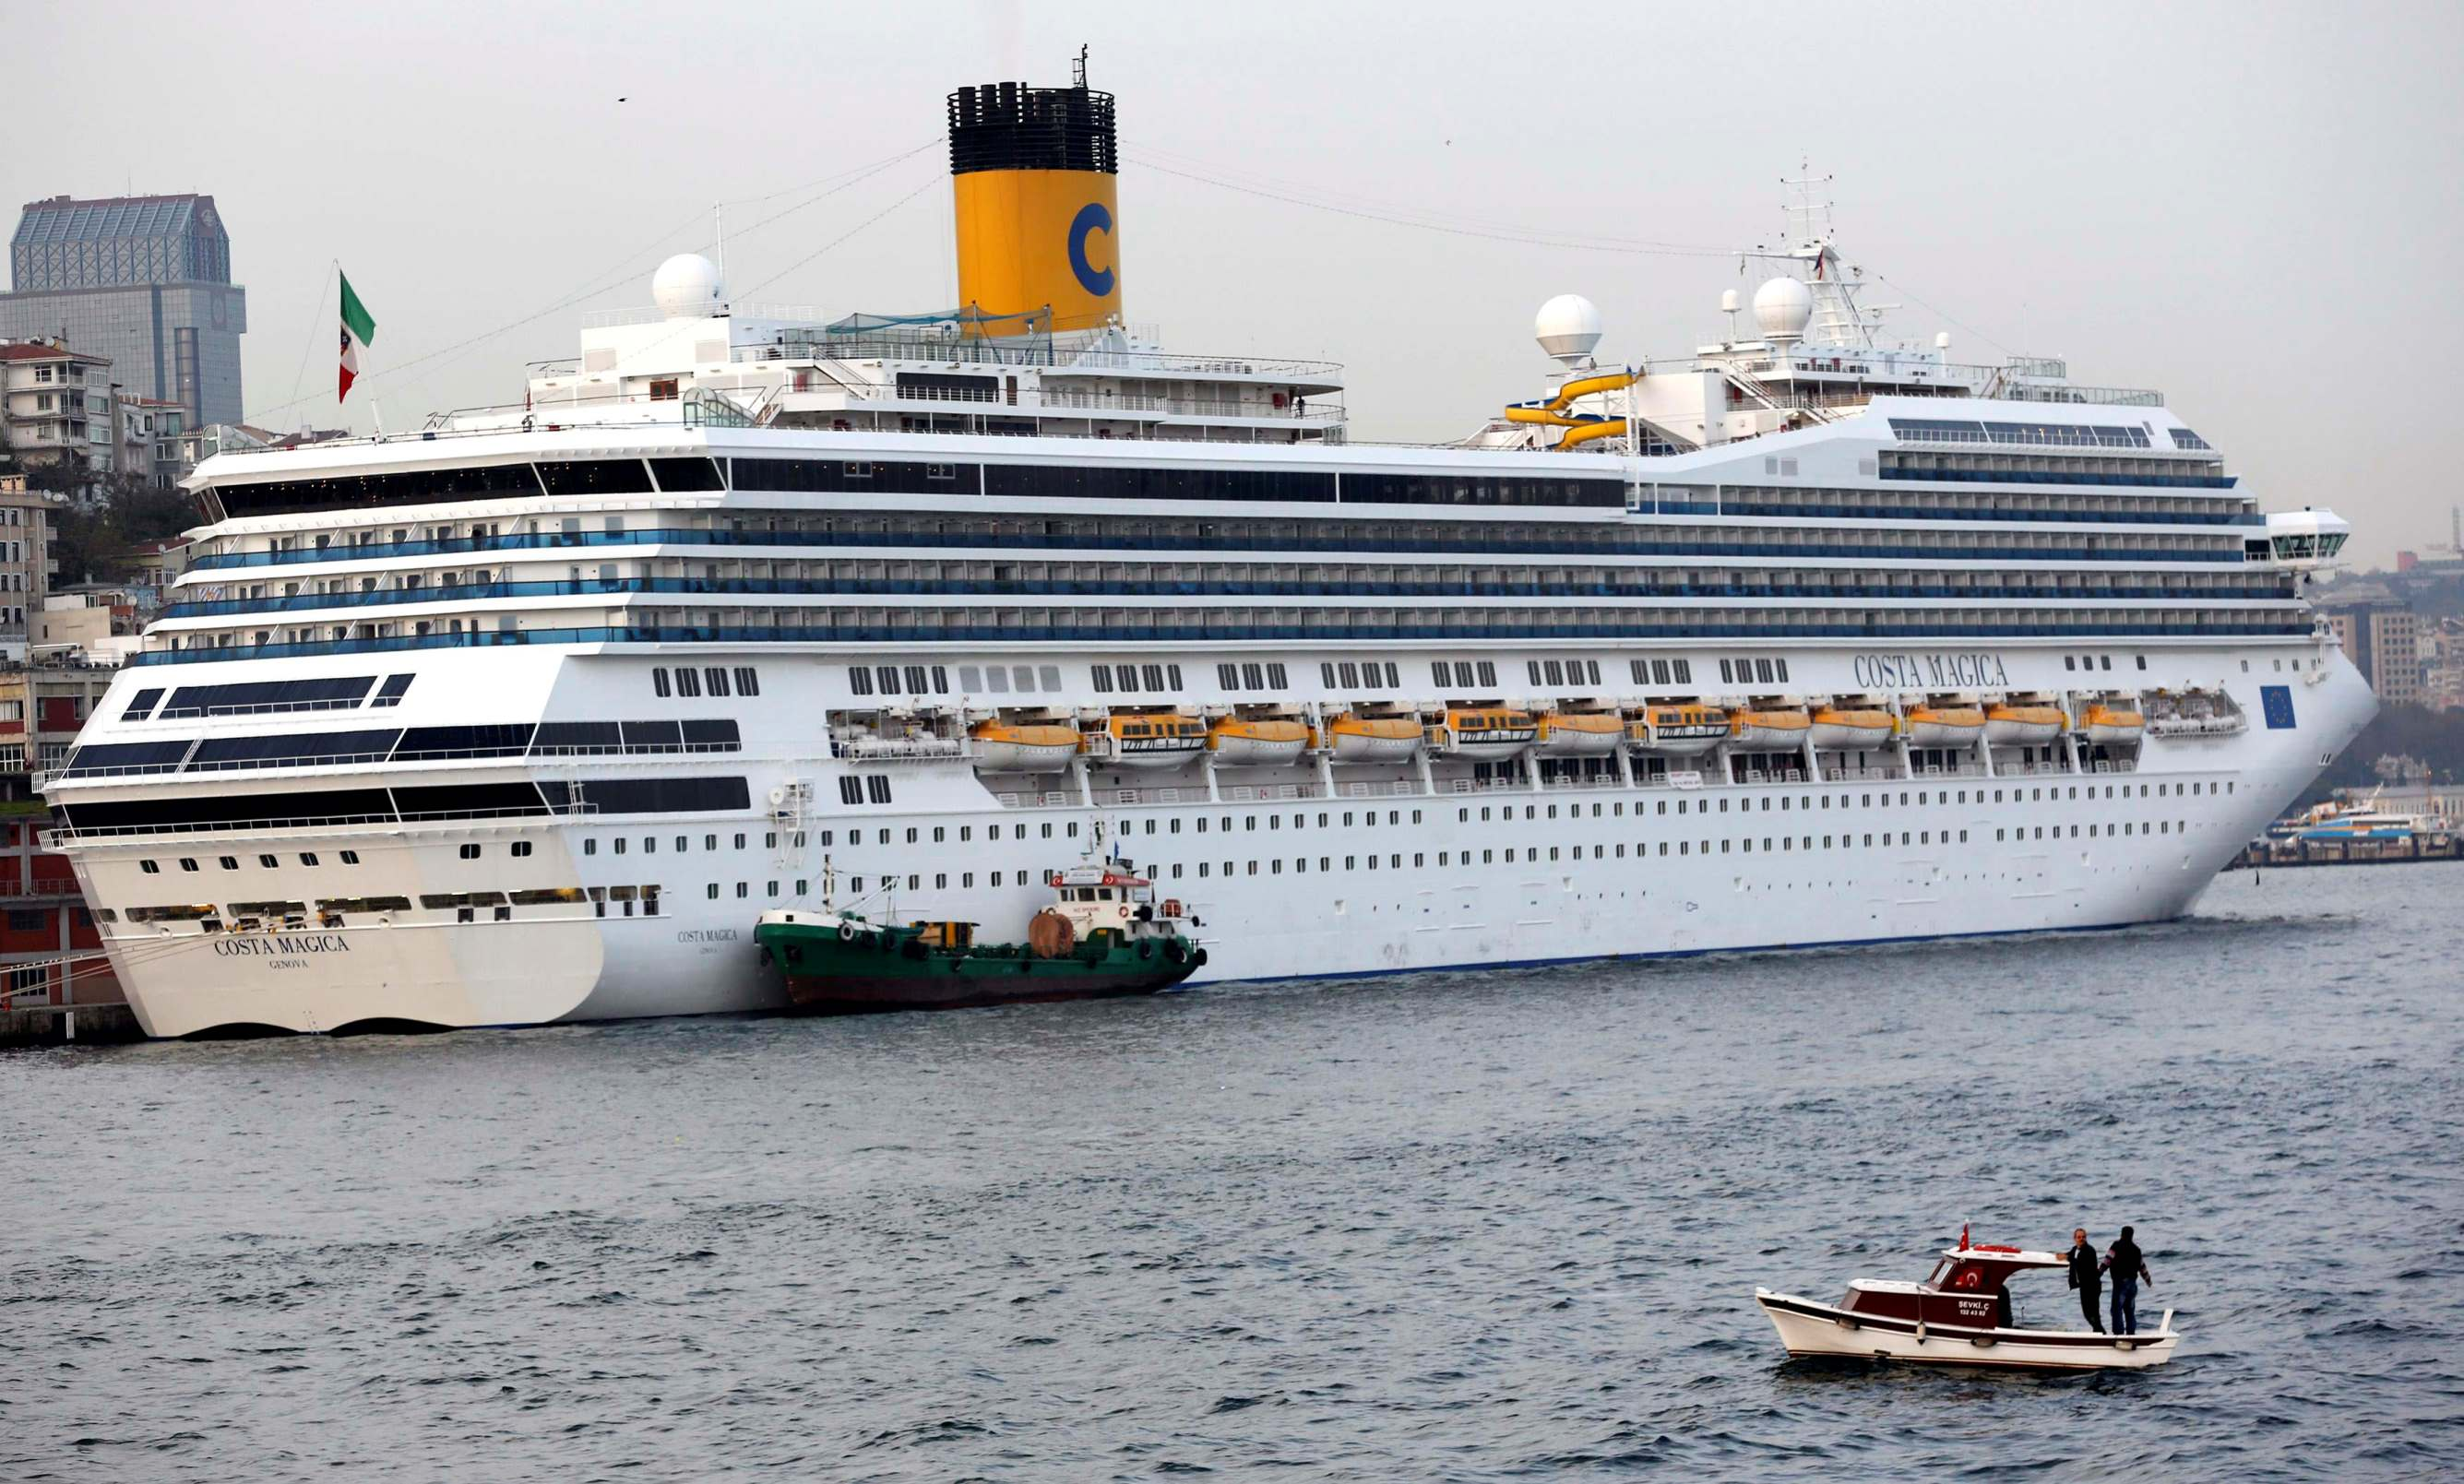 Italian-flagged cruise ship Costa Magica sets sail through the Bosporus in Istanbul November 7, 2014. An attempted murder investigation has been launched in northern Italy after a woman thought to have tried suicide by jumping to her death off a Costa cruise ship in Norway awoke from a long coma and said she had not tried to kill herself.